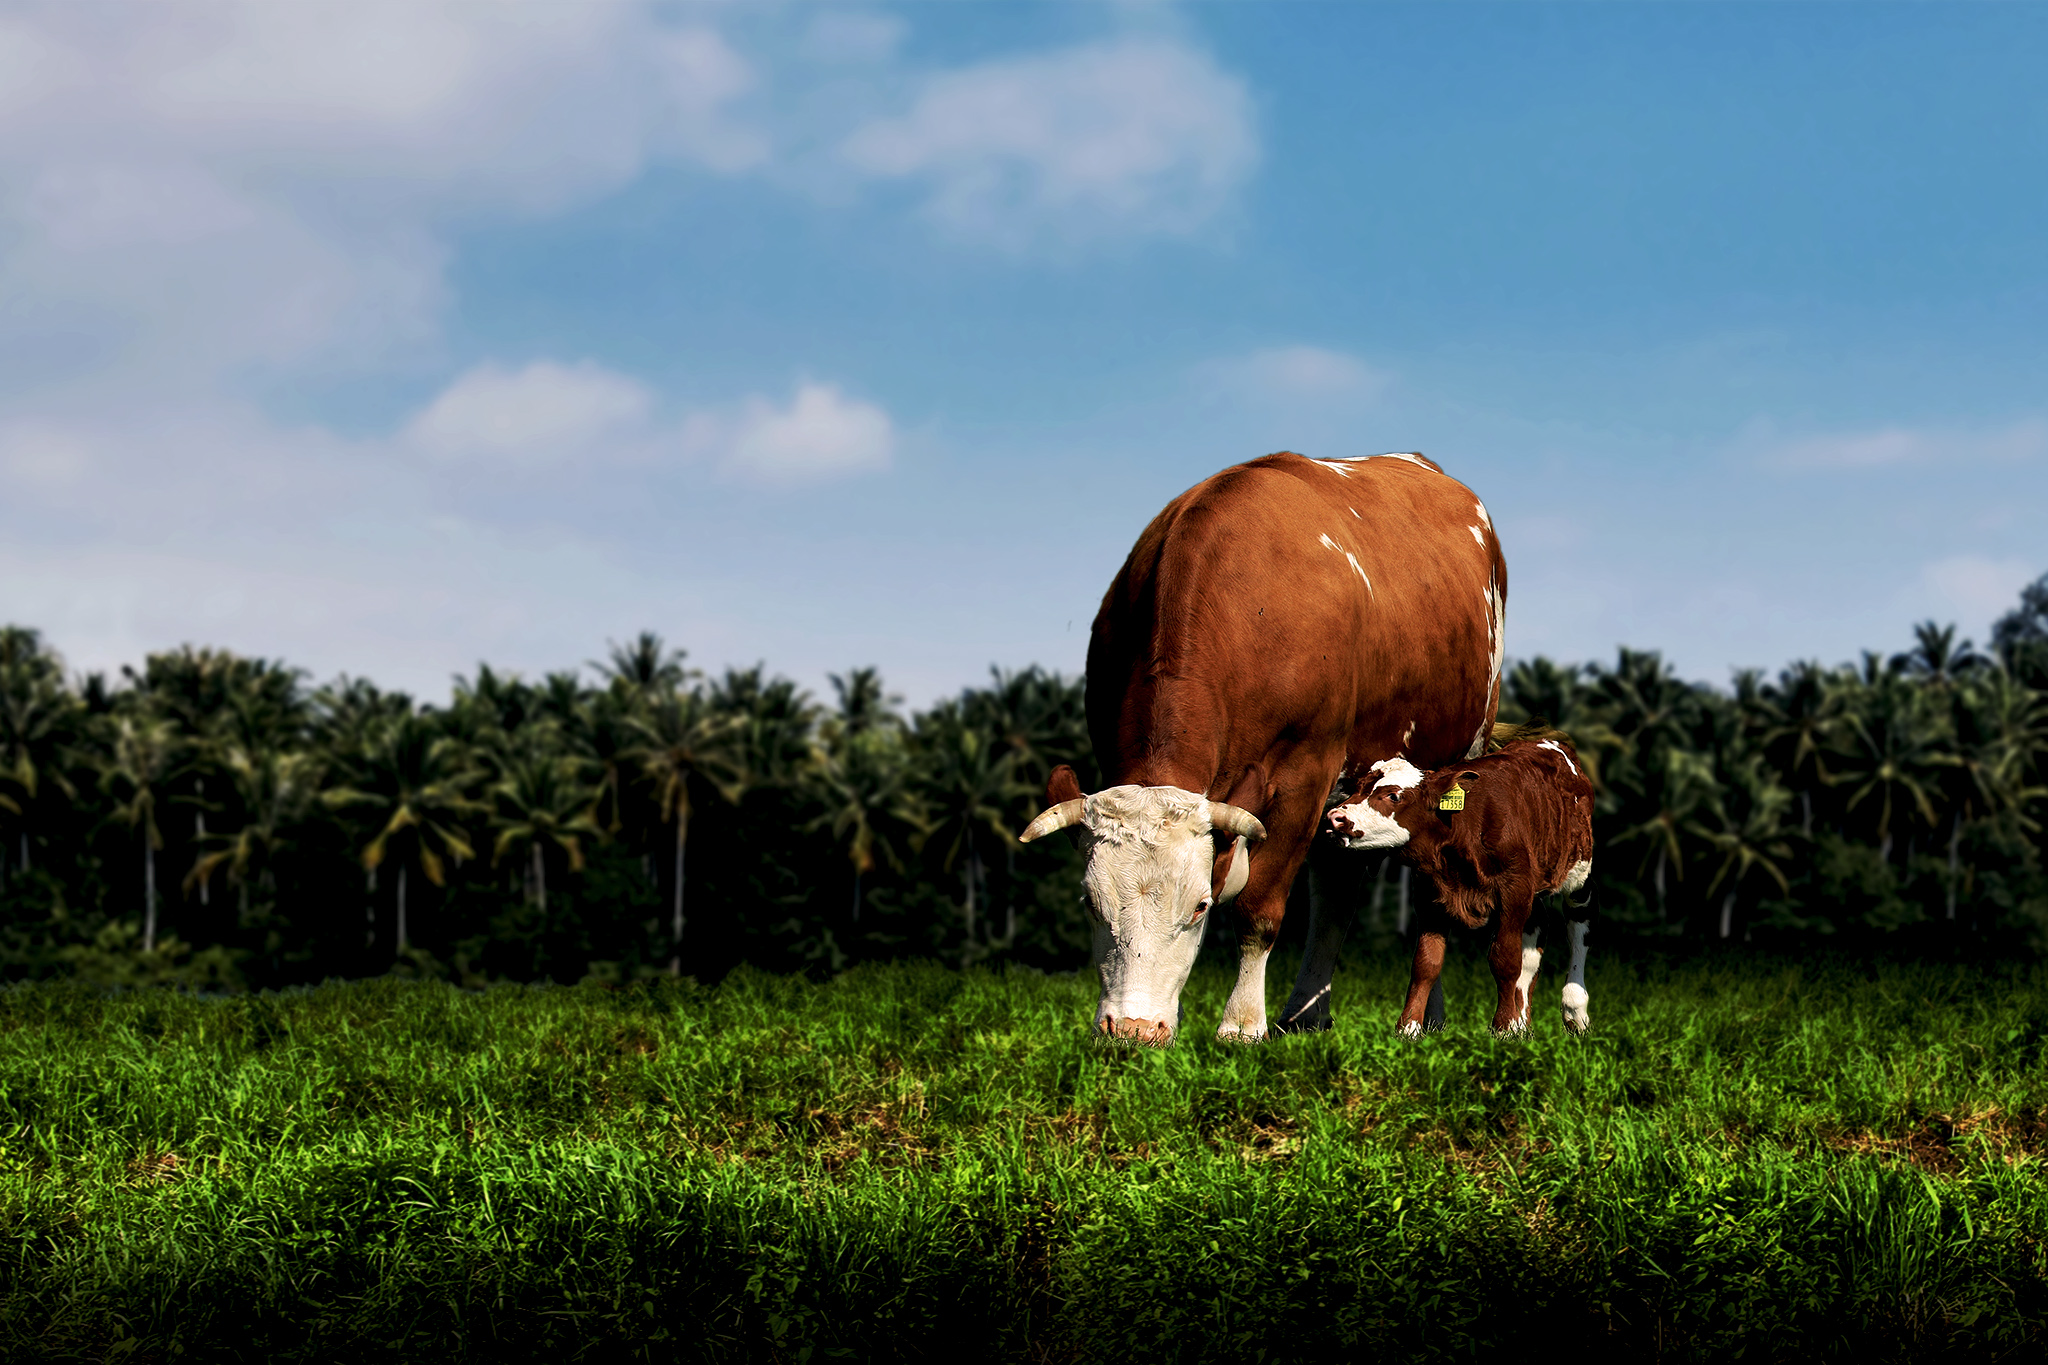 Beautiful ground and cows1.jpg